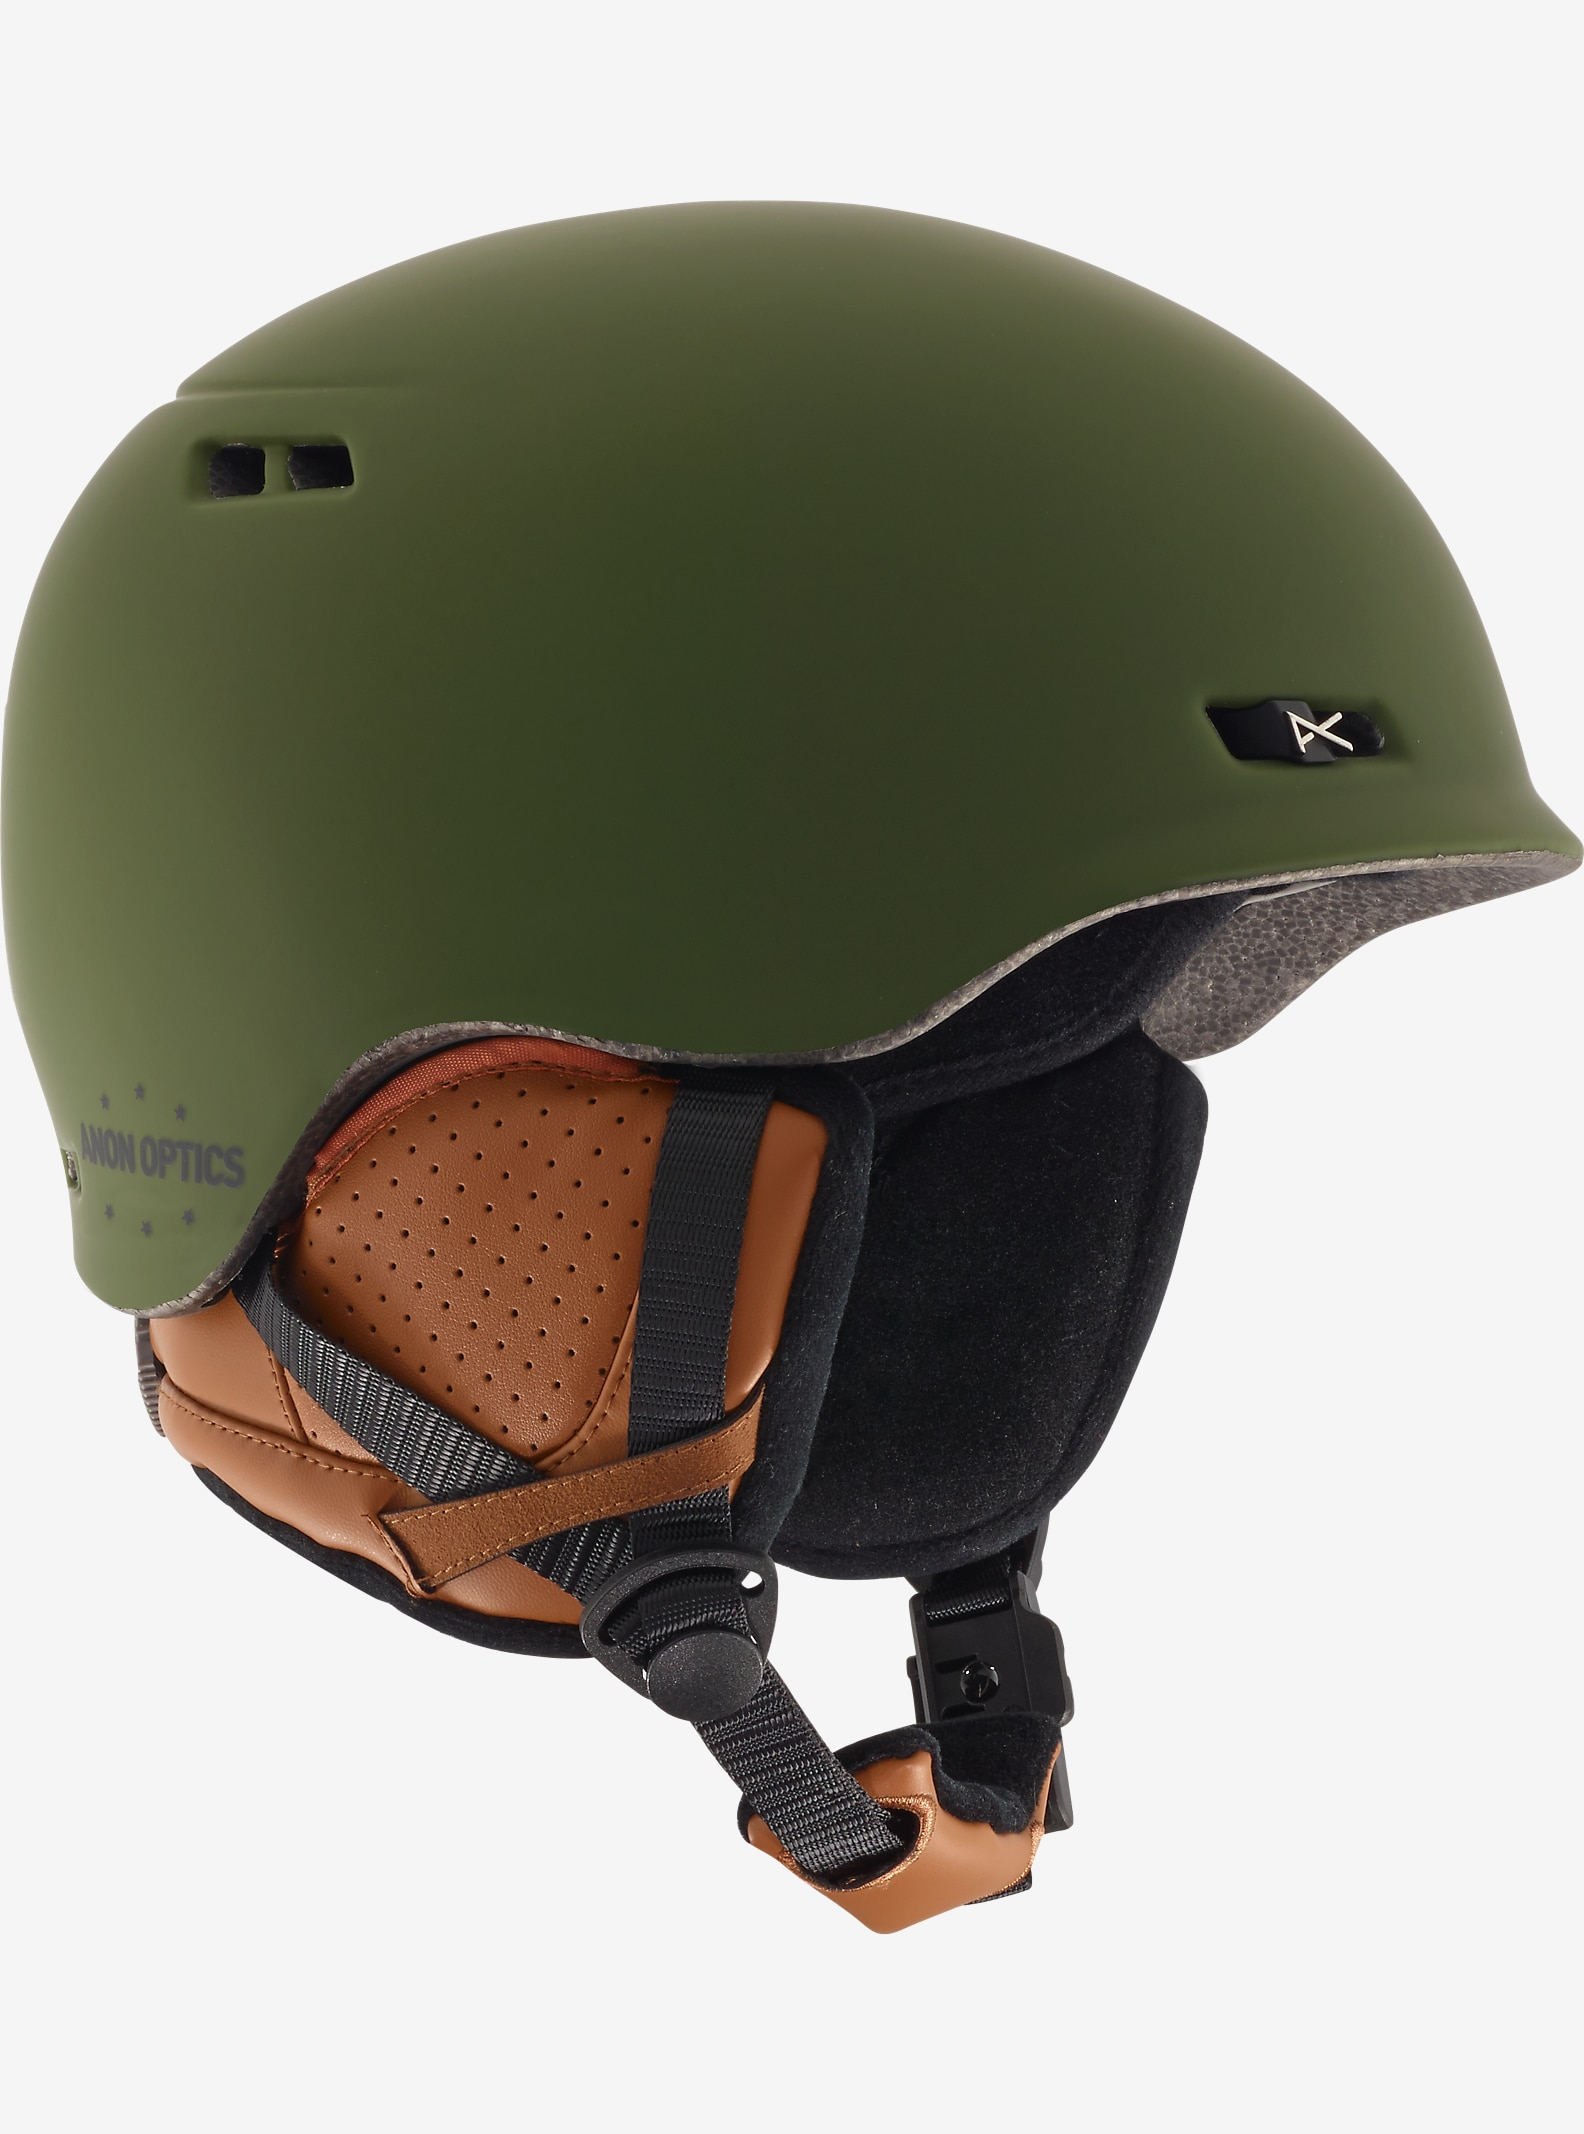 anon. Rodan Helmet shown in Green